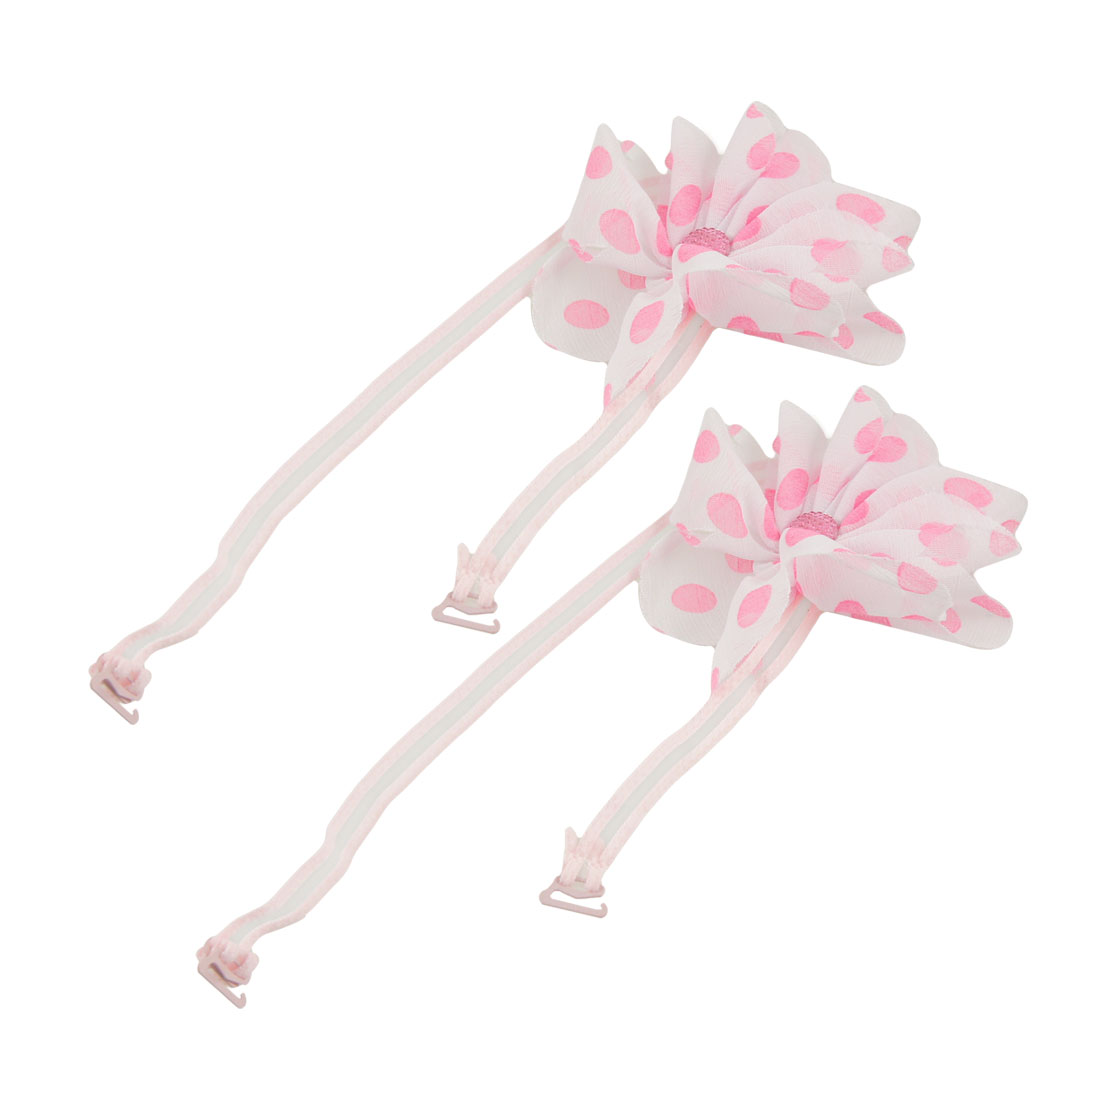 2 Pcs Pink White Flower Accent Elastic Bra Shoulder Straps for Ladies